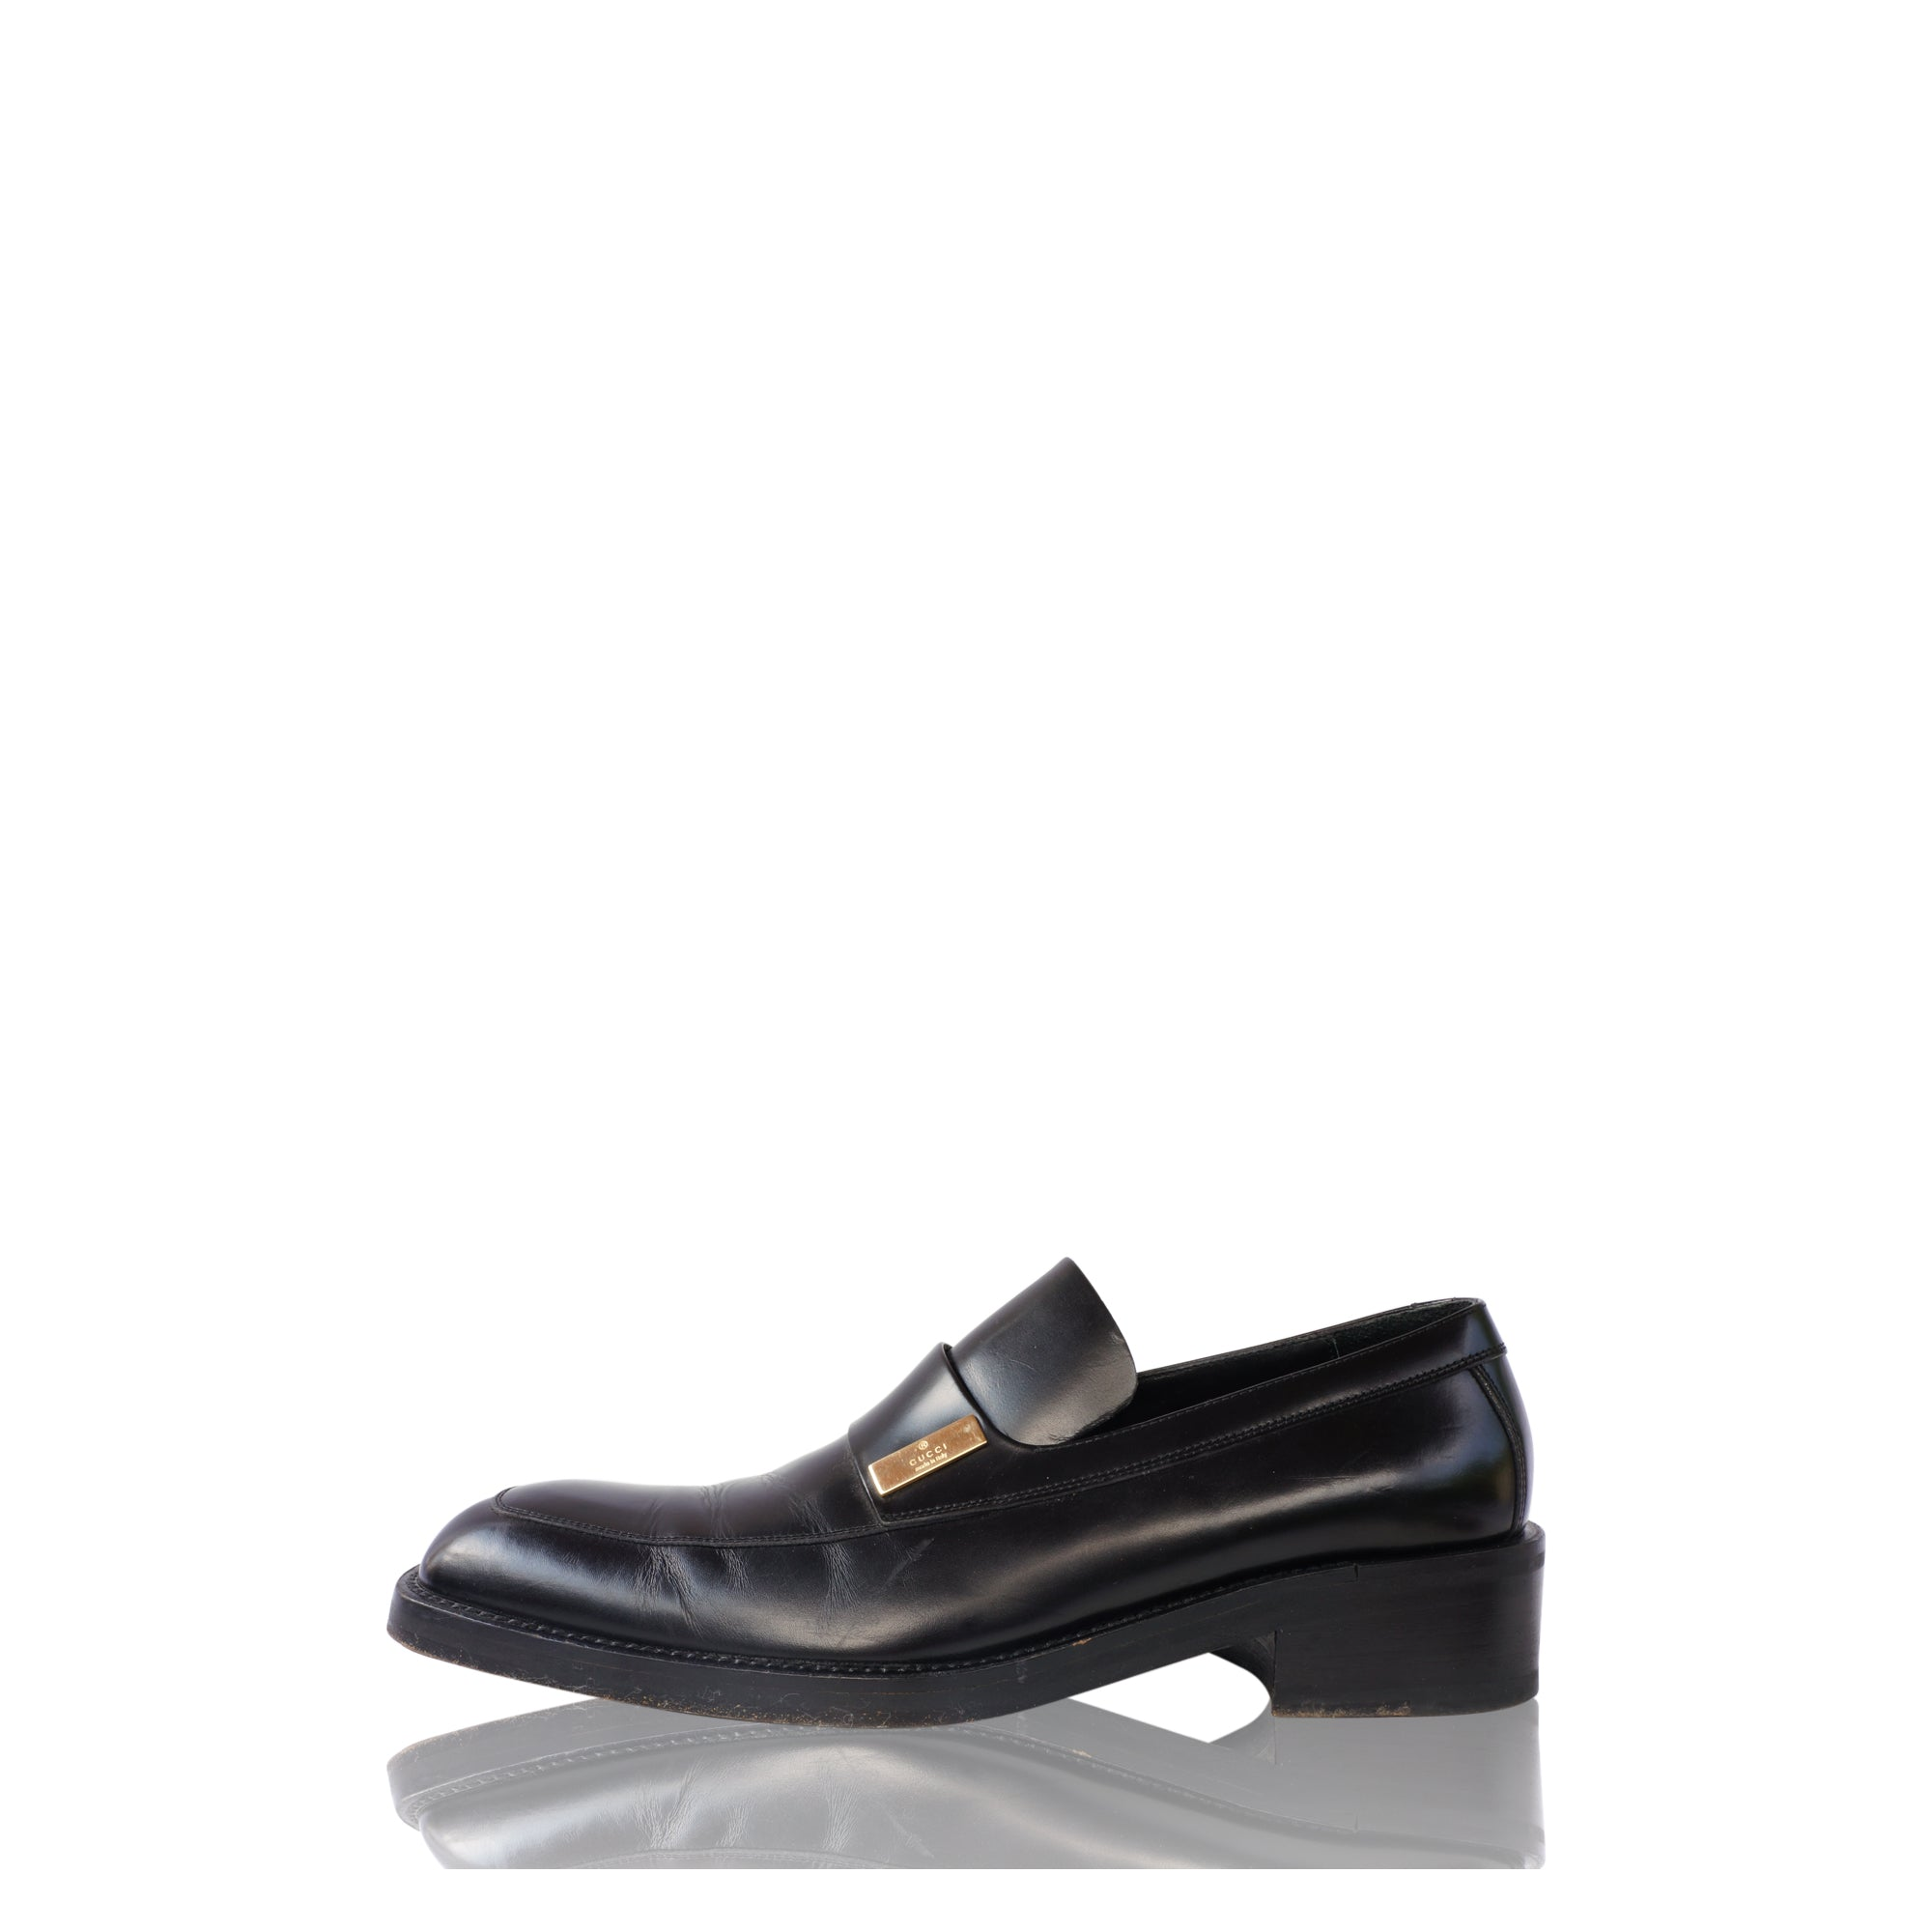 20637351a GUCCI BLACK LEATHER SLIP ON LOAFER Shop online the best value on authentic  designer used preowned ...